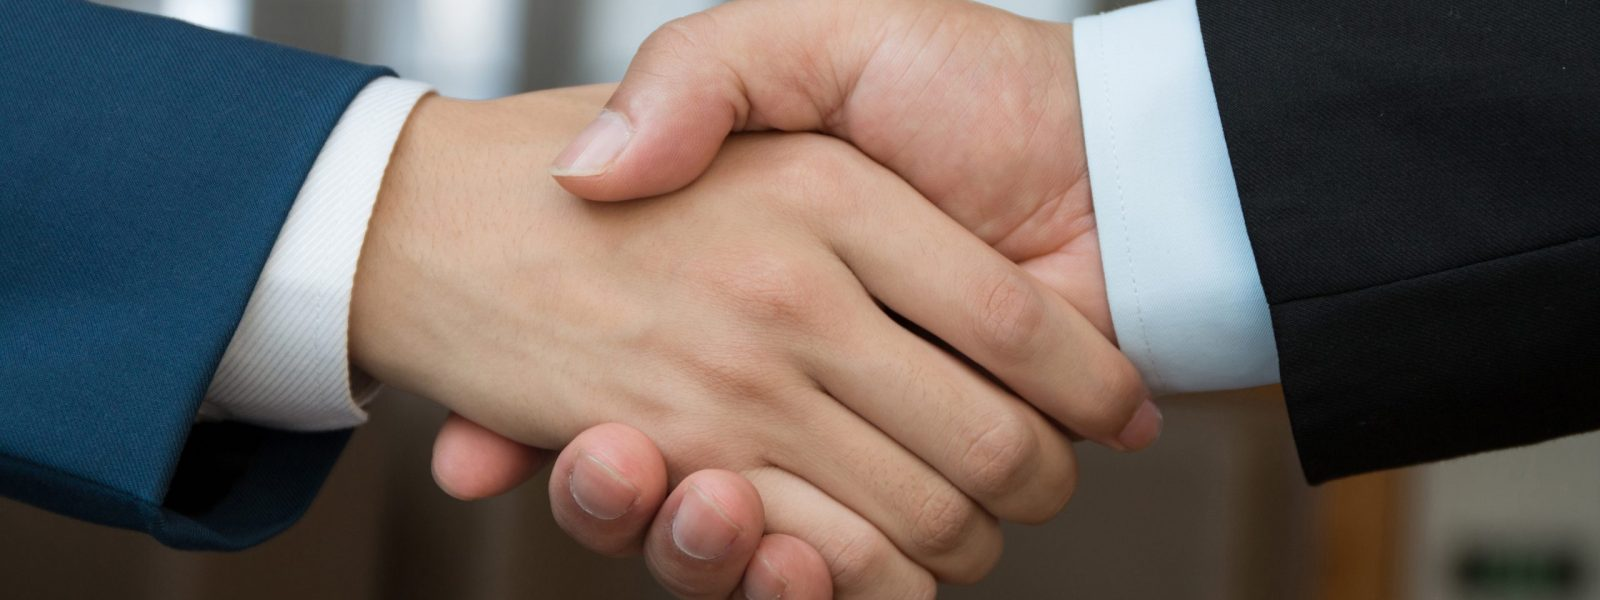 handshake-business-concepts-4k-conclusion-of-a-deal-business-people